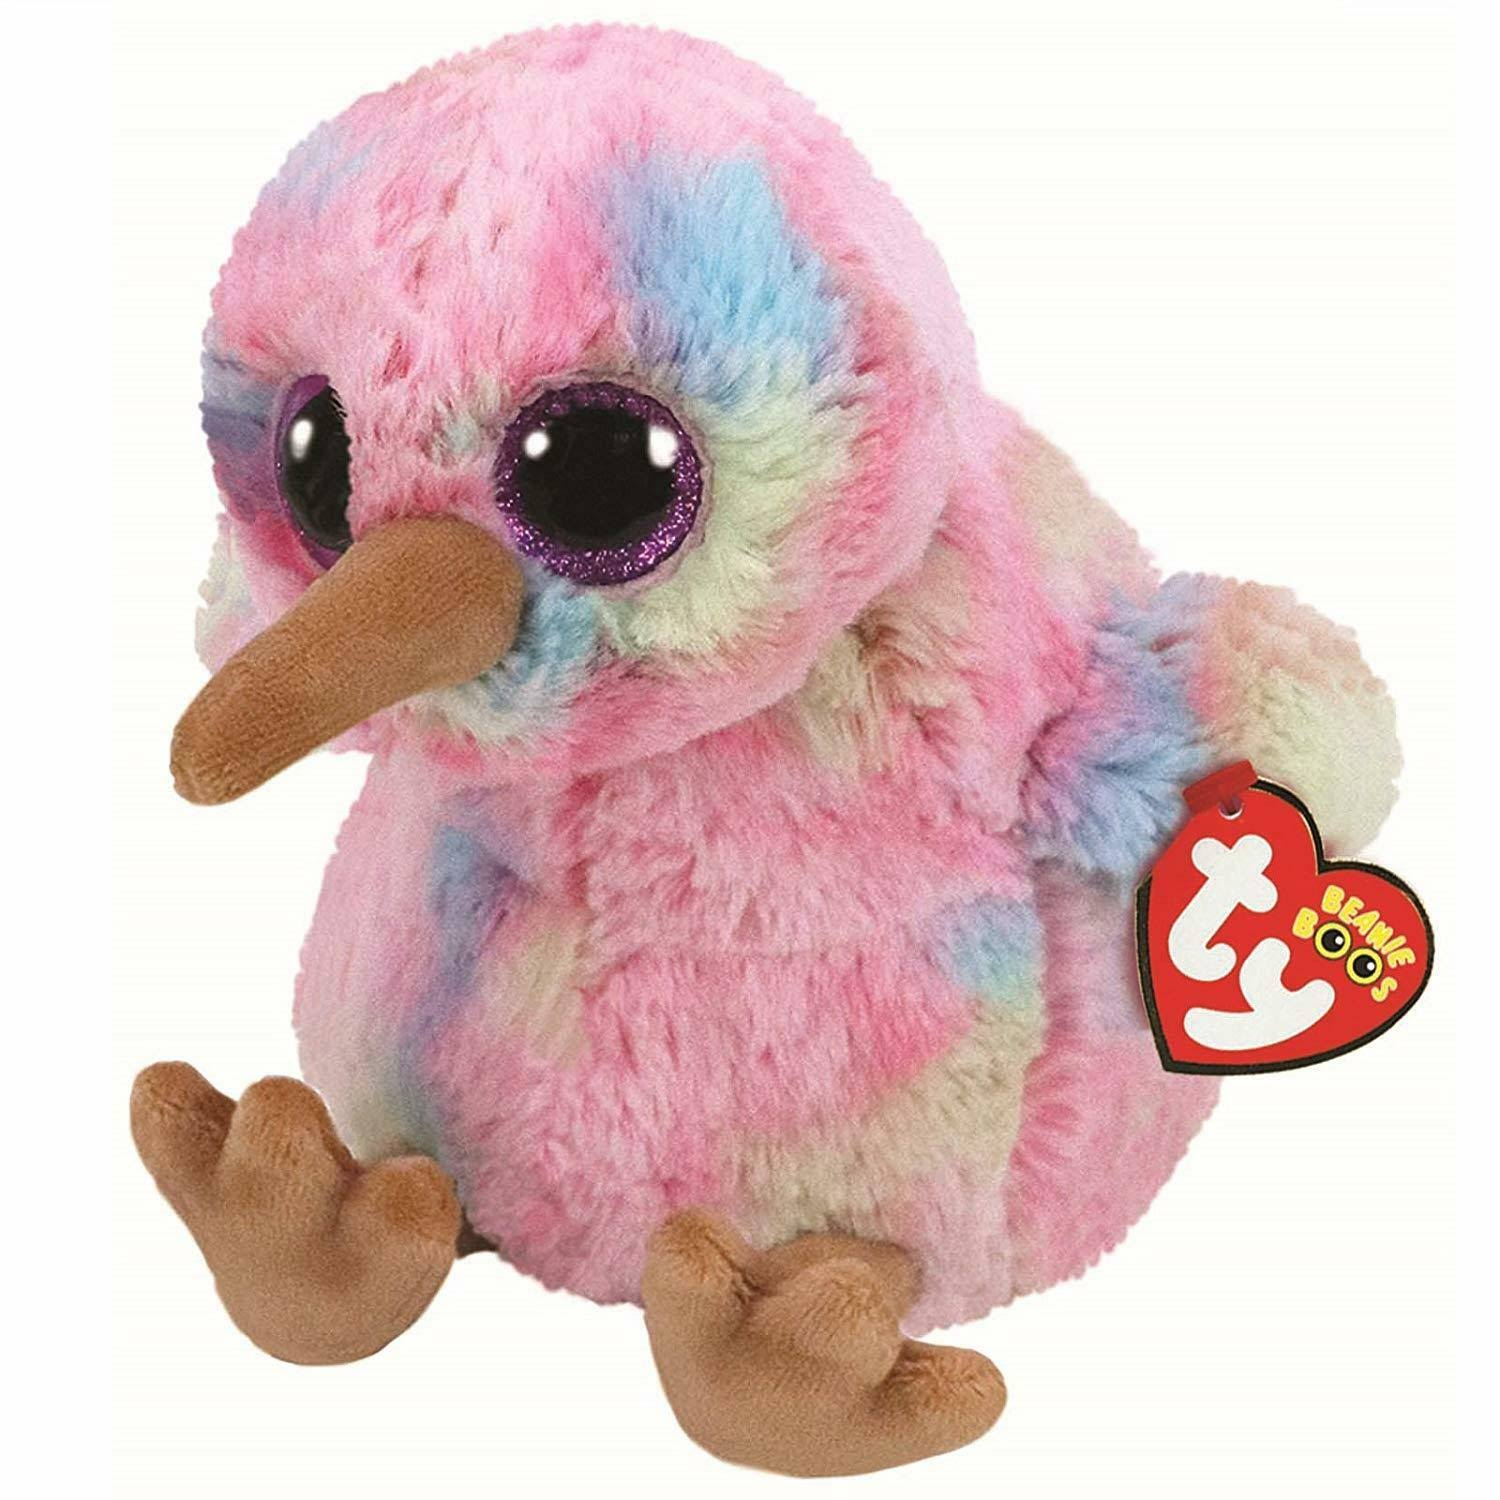 TY Beanie Boo's Plush - Multicoloured Kiwi